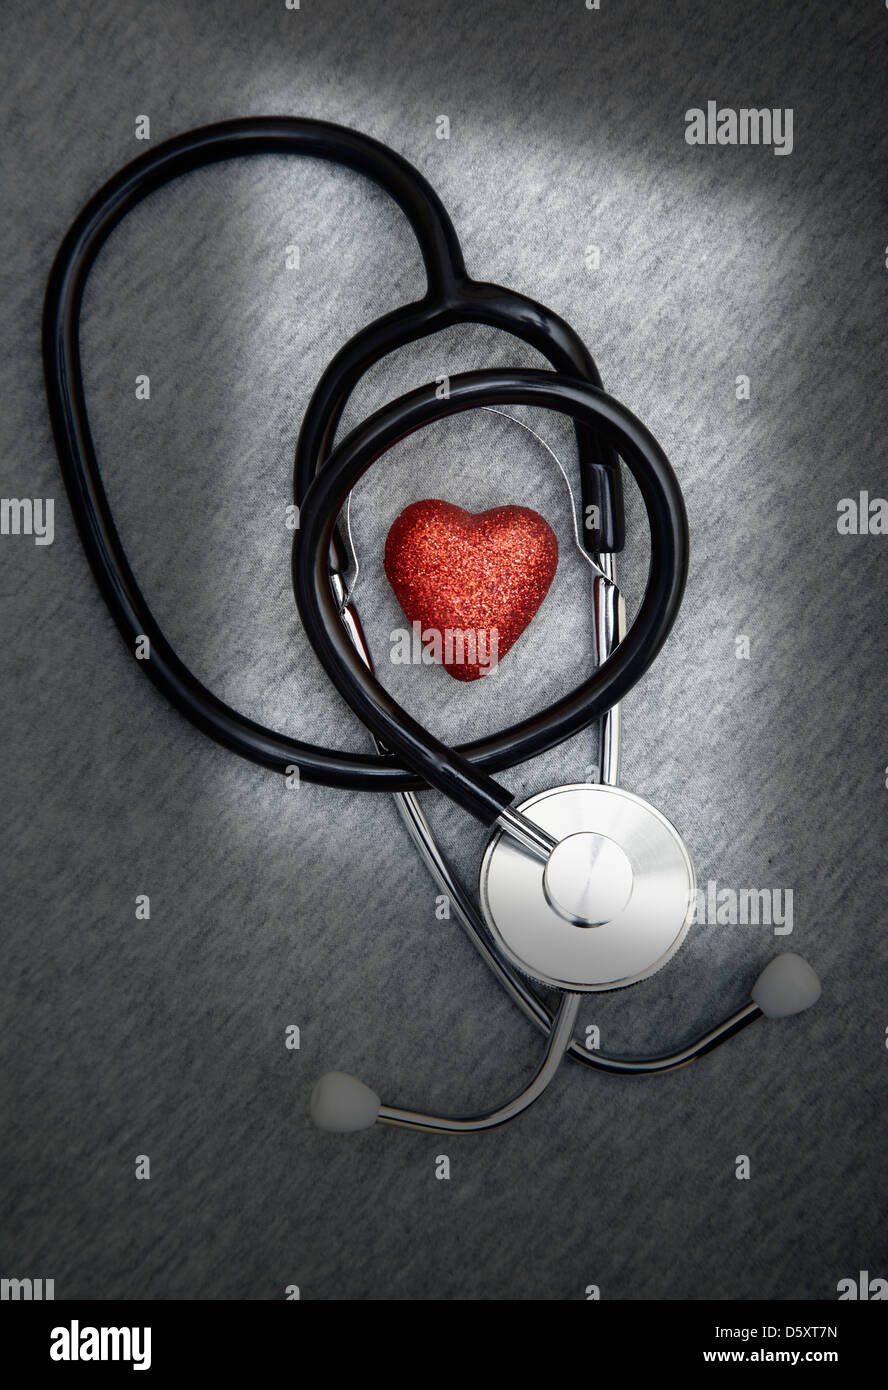 Heart care - Stock Image